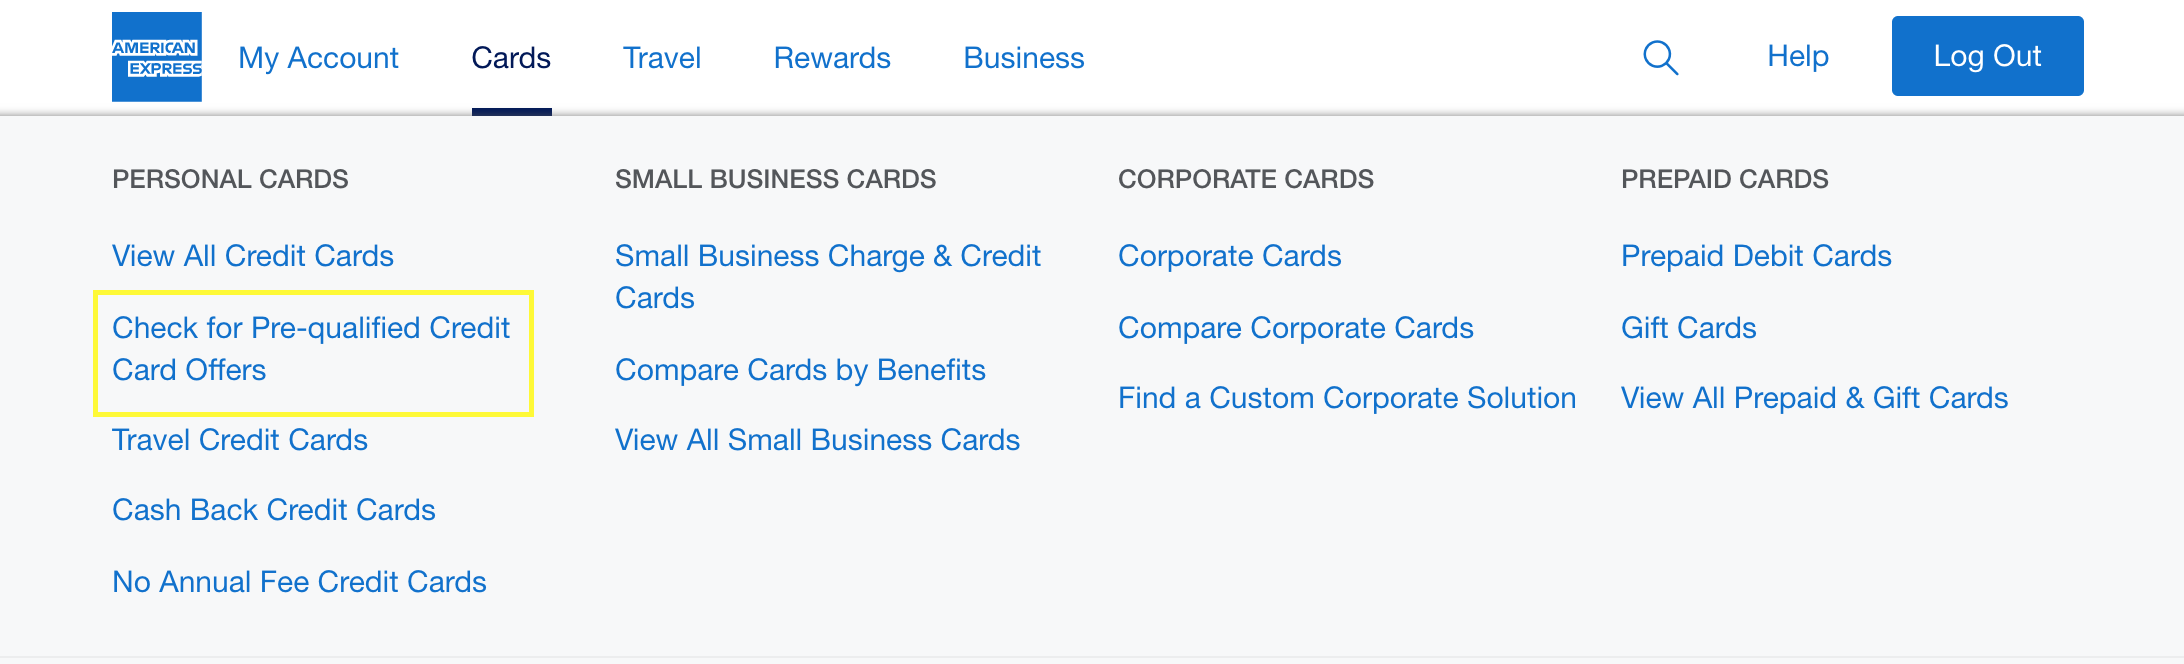 Americanexpress Com Delta >> How to Get a Targeted Bonus on Delta Credit Cards [Personal]